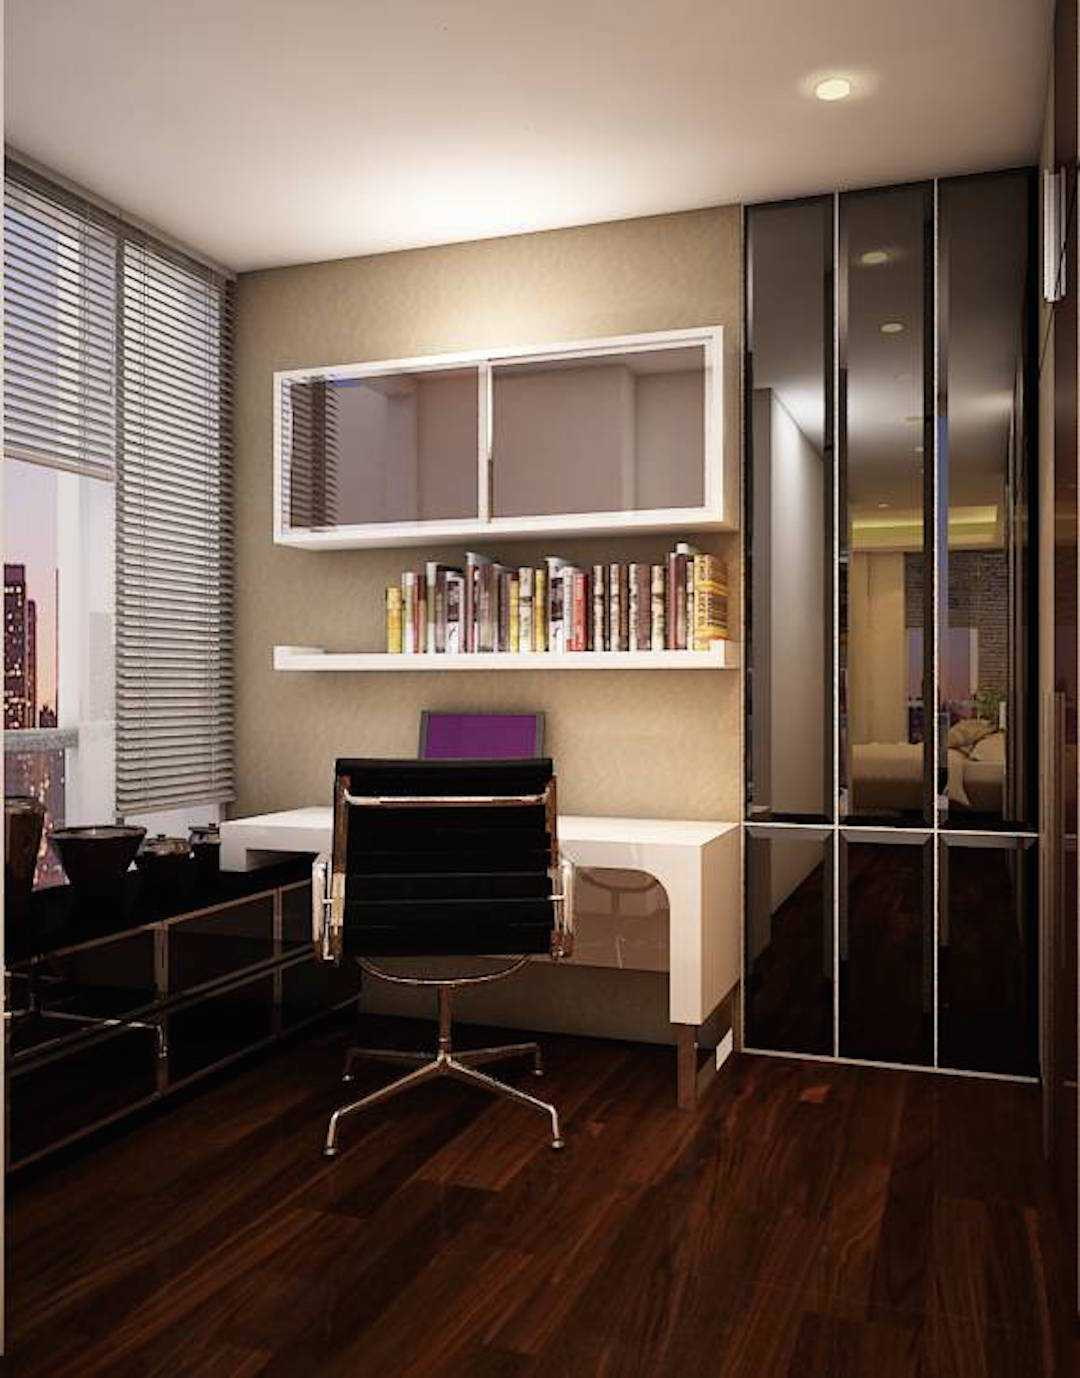 Expo Tje. Aa.aa.bsc.ba.ma The Suitroom With Office Function Apartment Jakarta, Indonesia Green Hill Suitroom Apartment Working Area Modern 26542